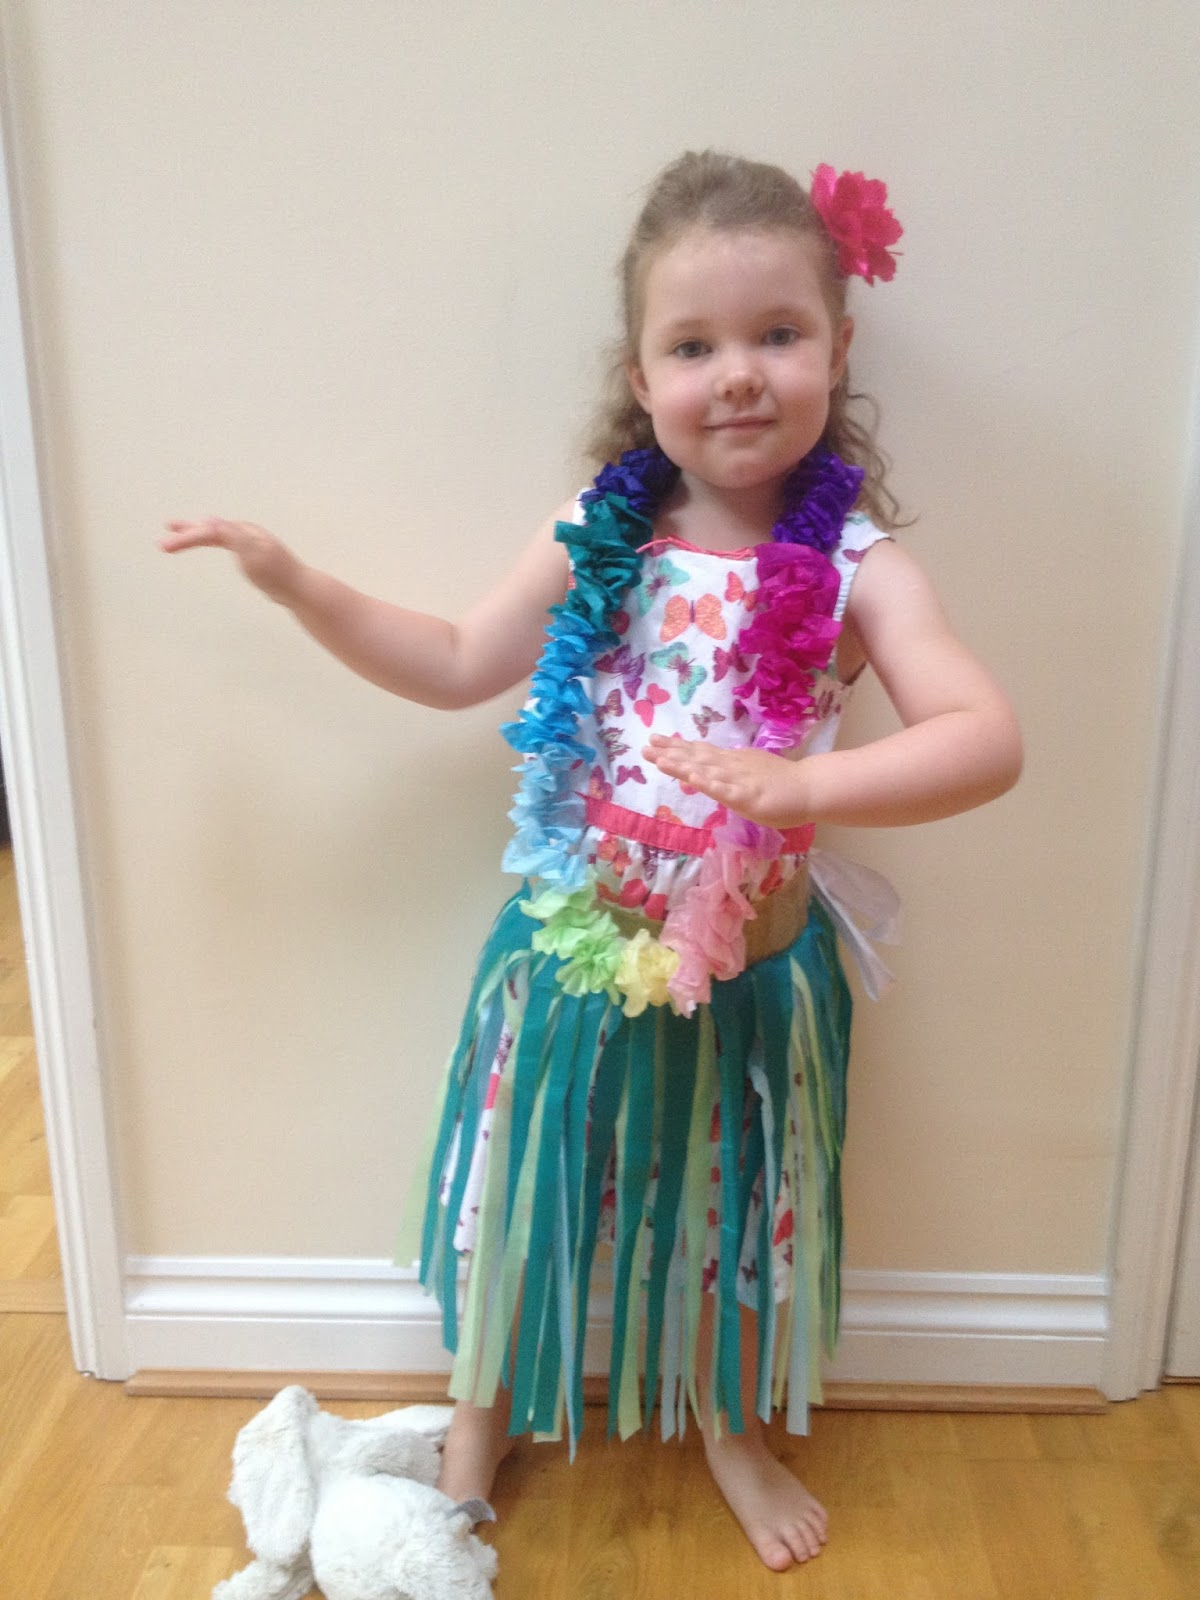 ... people liked her costume and knew what it was representing whew admittedly the tissue paper strands · kids hawaiian ...  sc 1 st  Best Kids Costumes & Kids Hawaiian Costumes - Best Kids Costumes